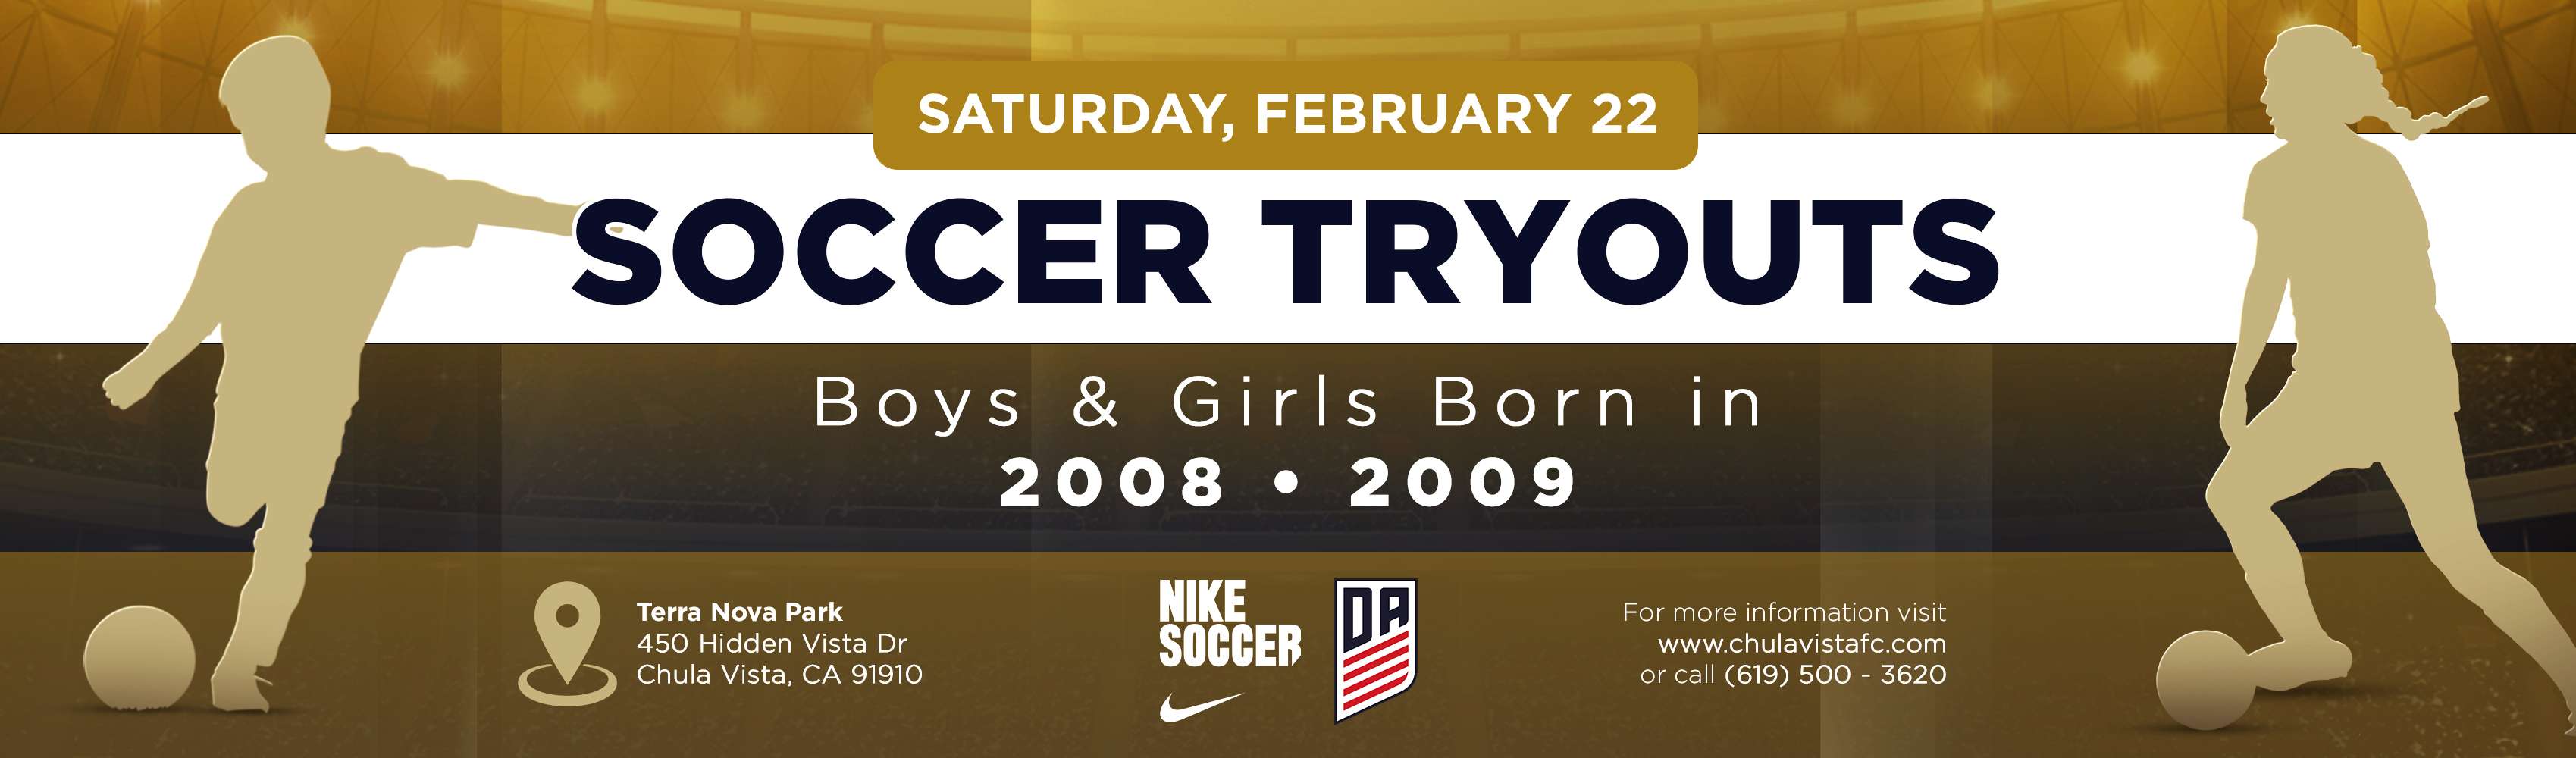 Younger Tryouts Announced